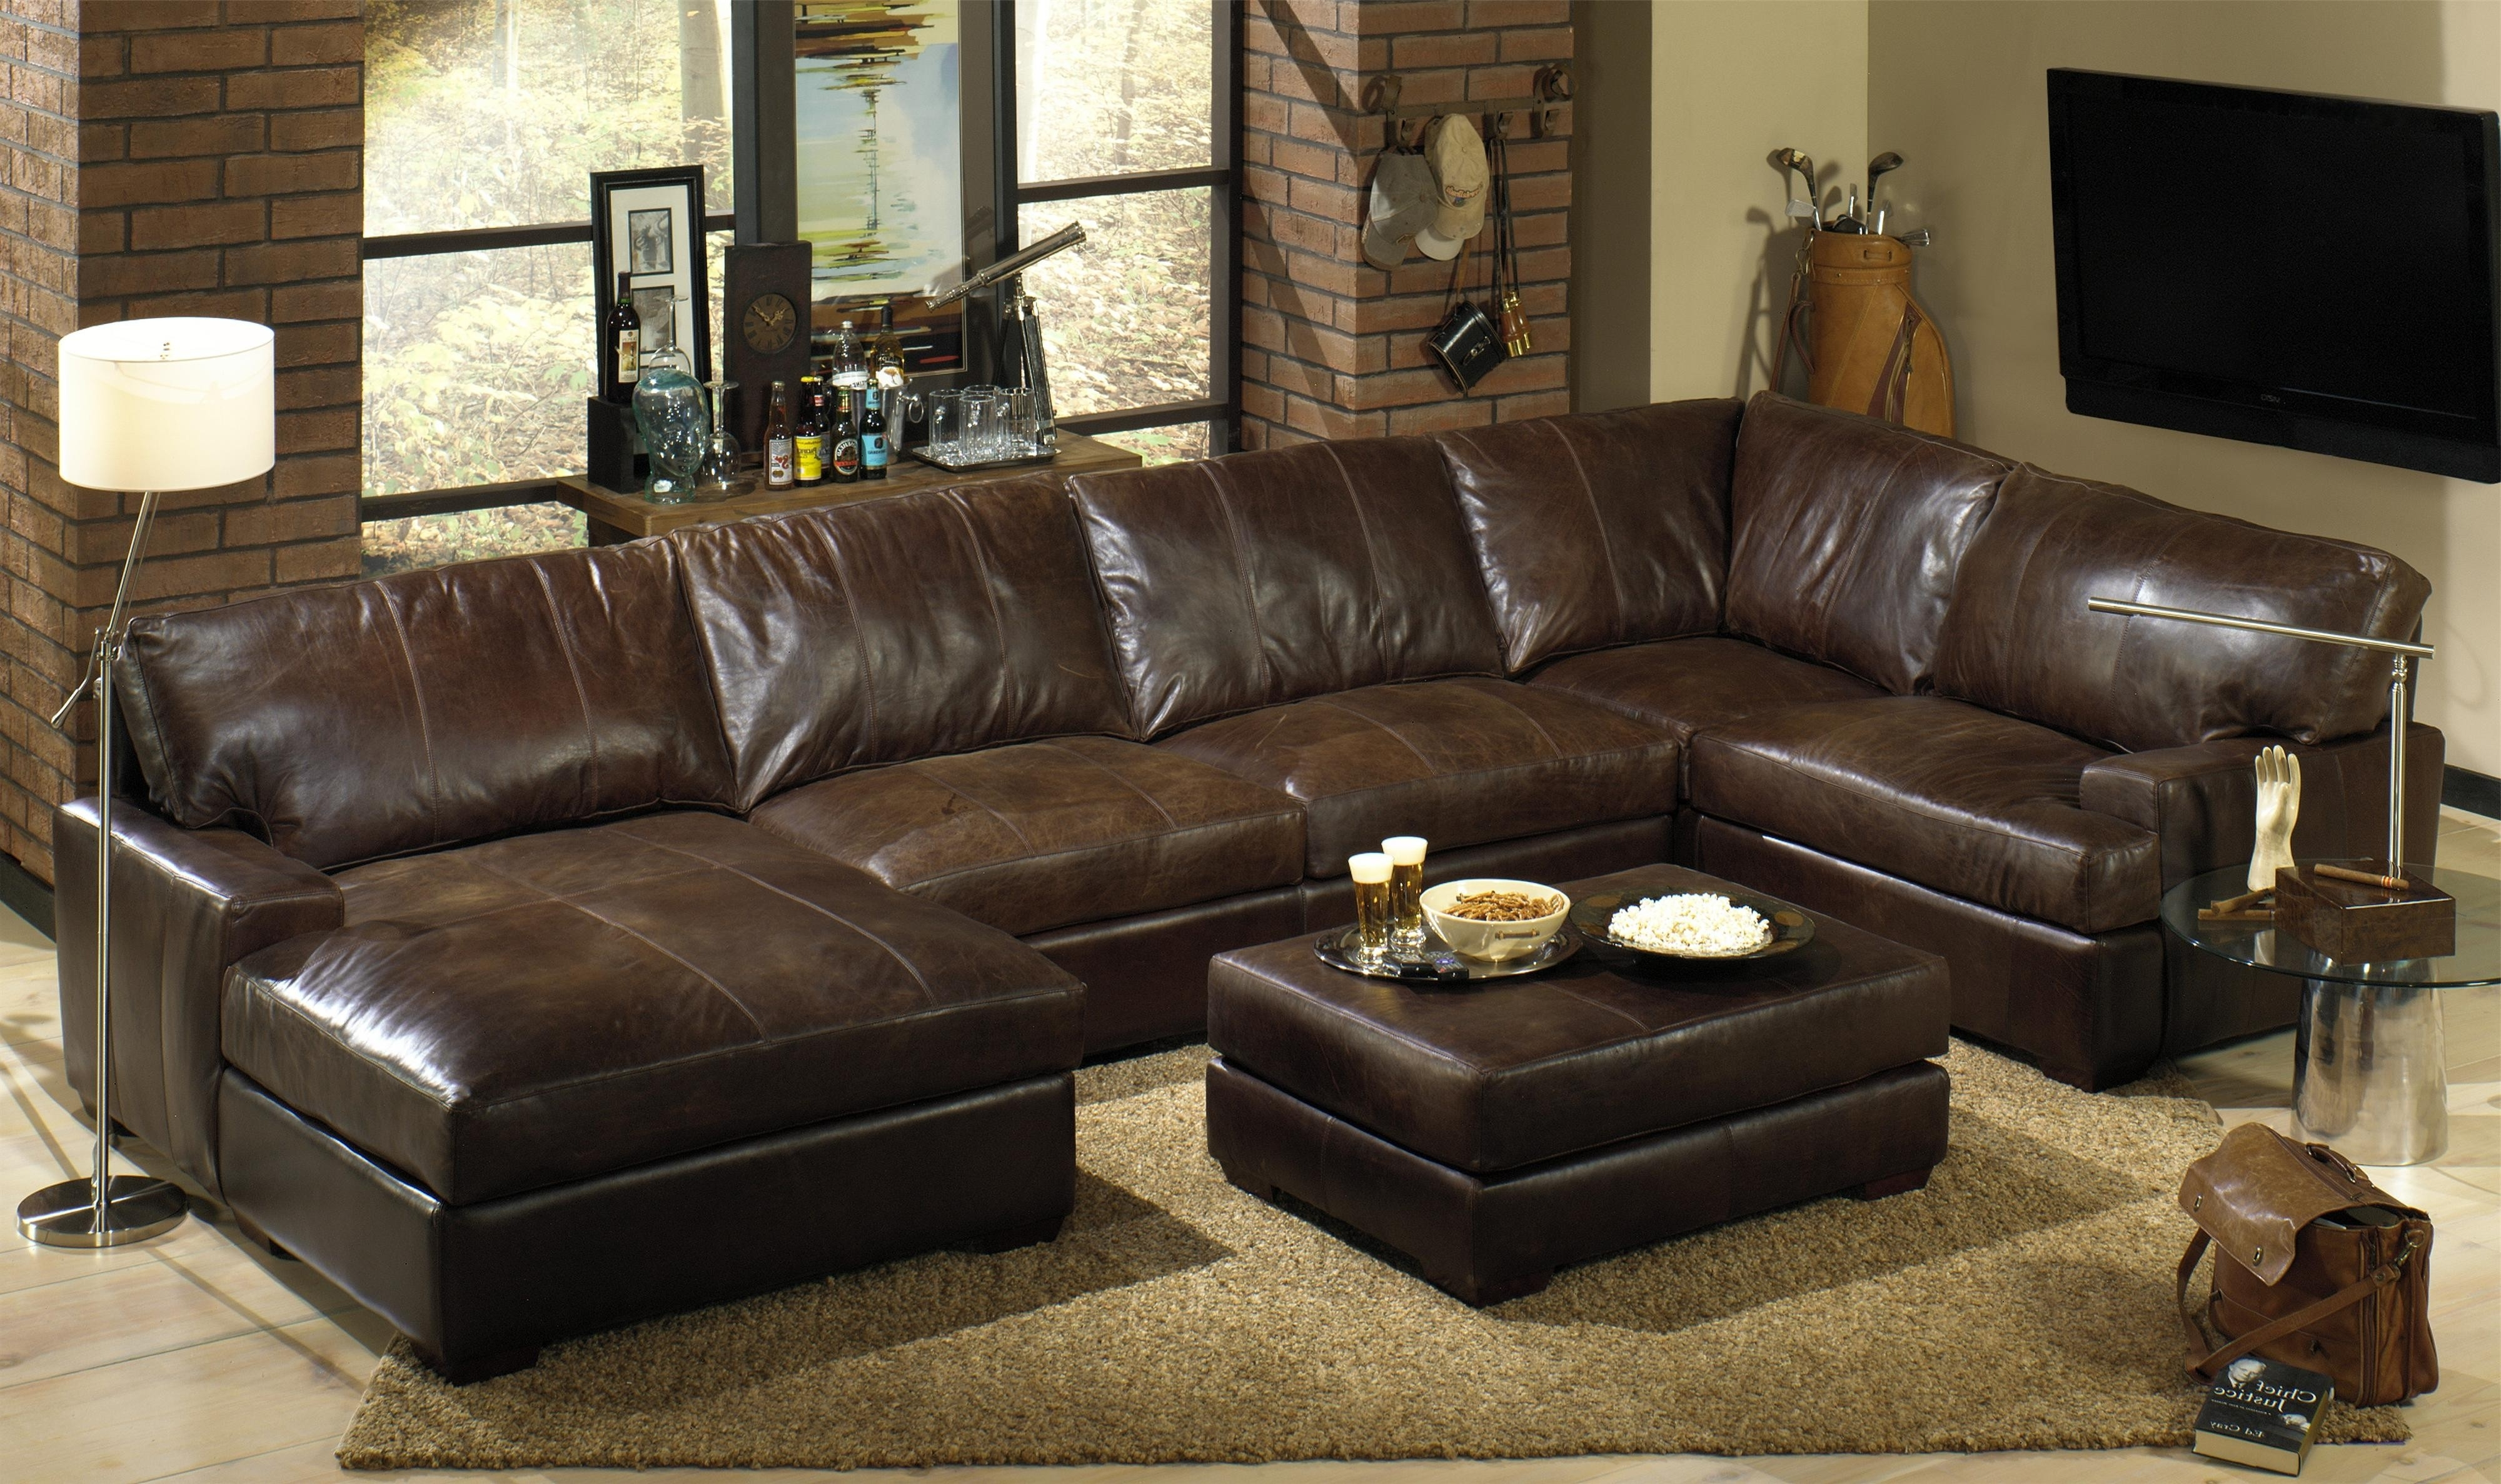 Preferred Leather Sectional Sofas Awesome 6 Piece Leather Sectional Sofa Pertaining To 6 Piece Leather Sectional Sofas (View 19 of 20)